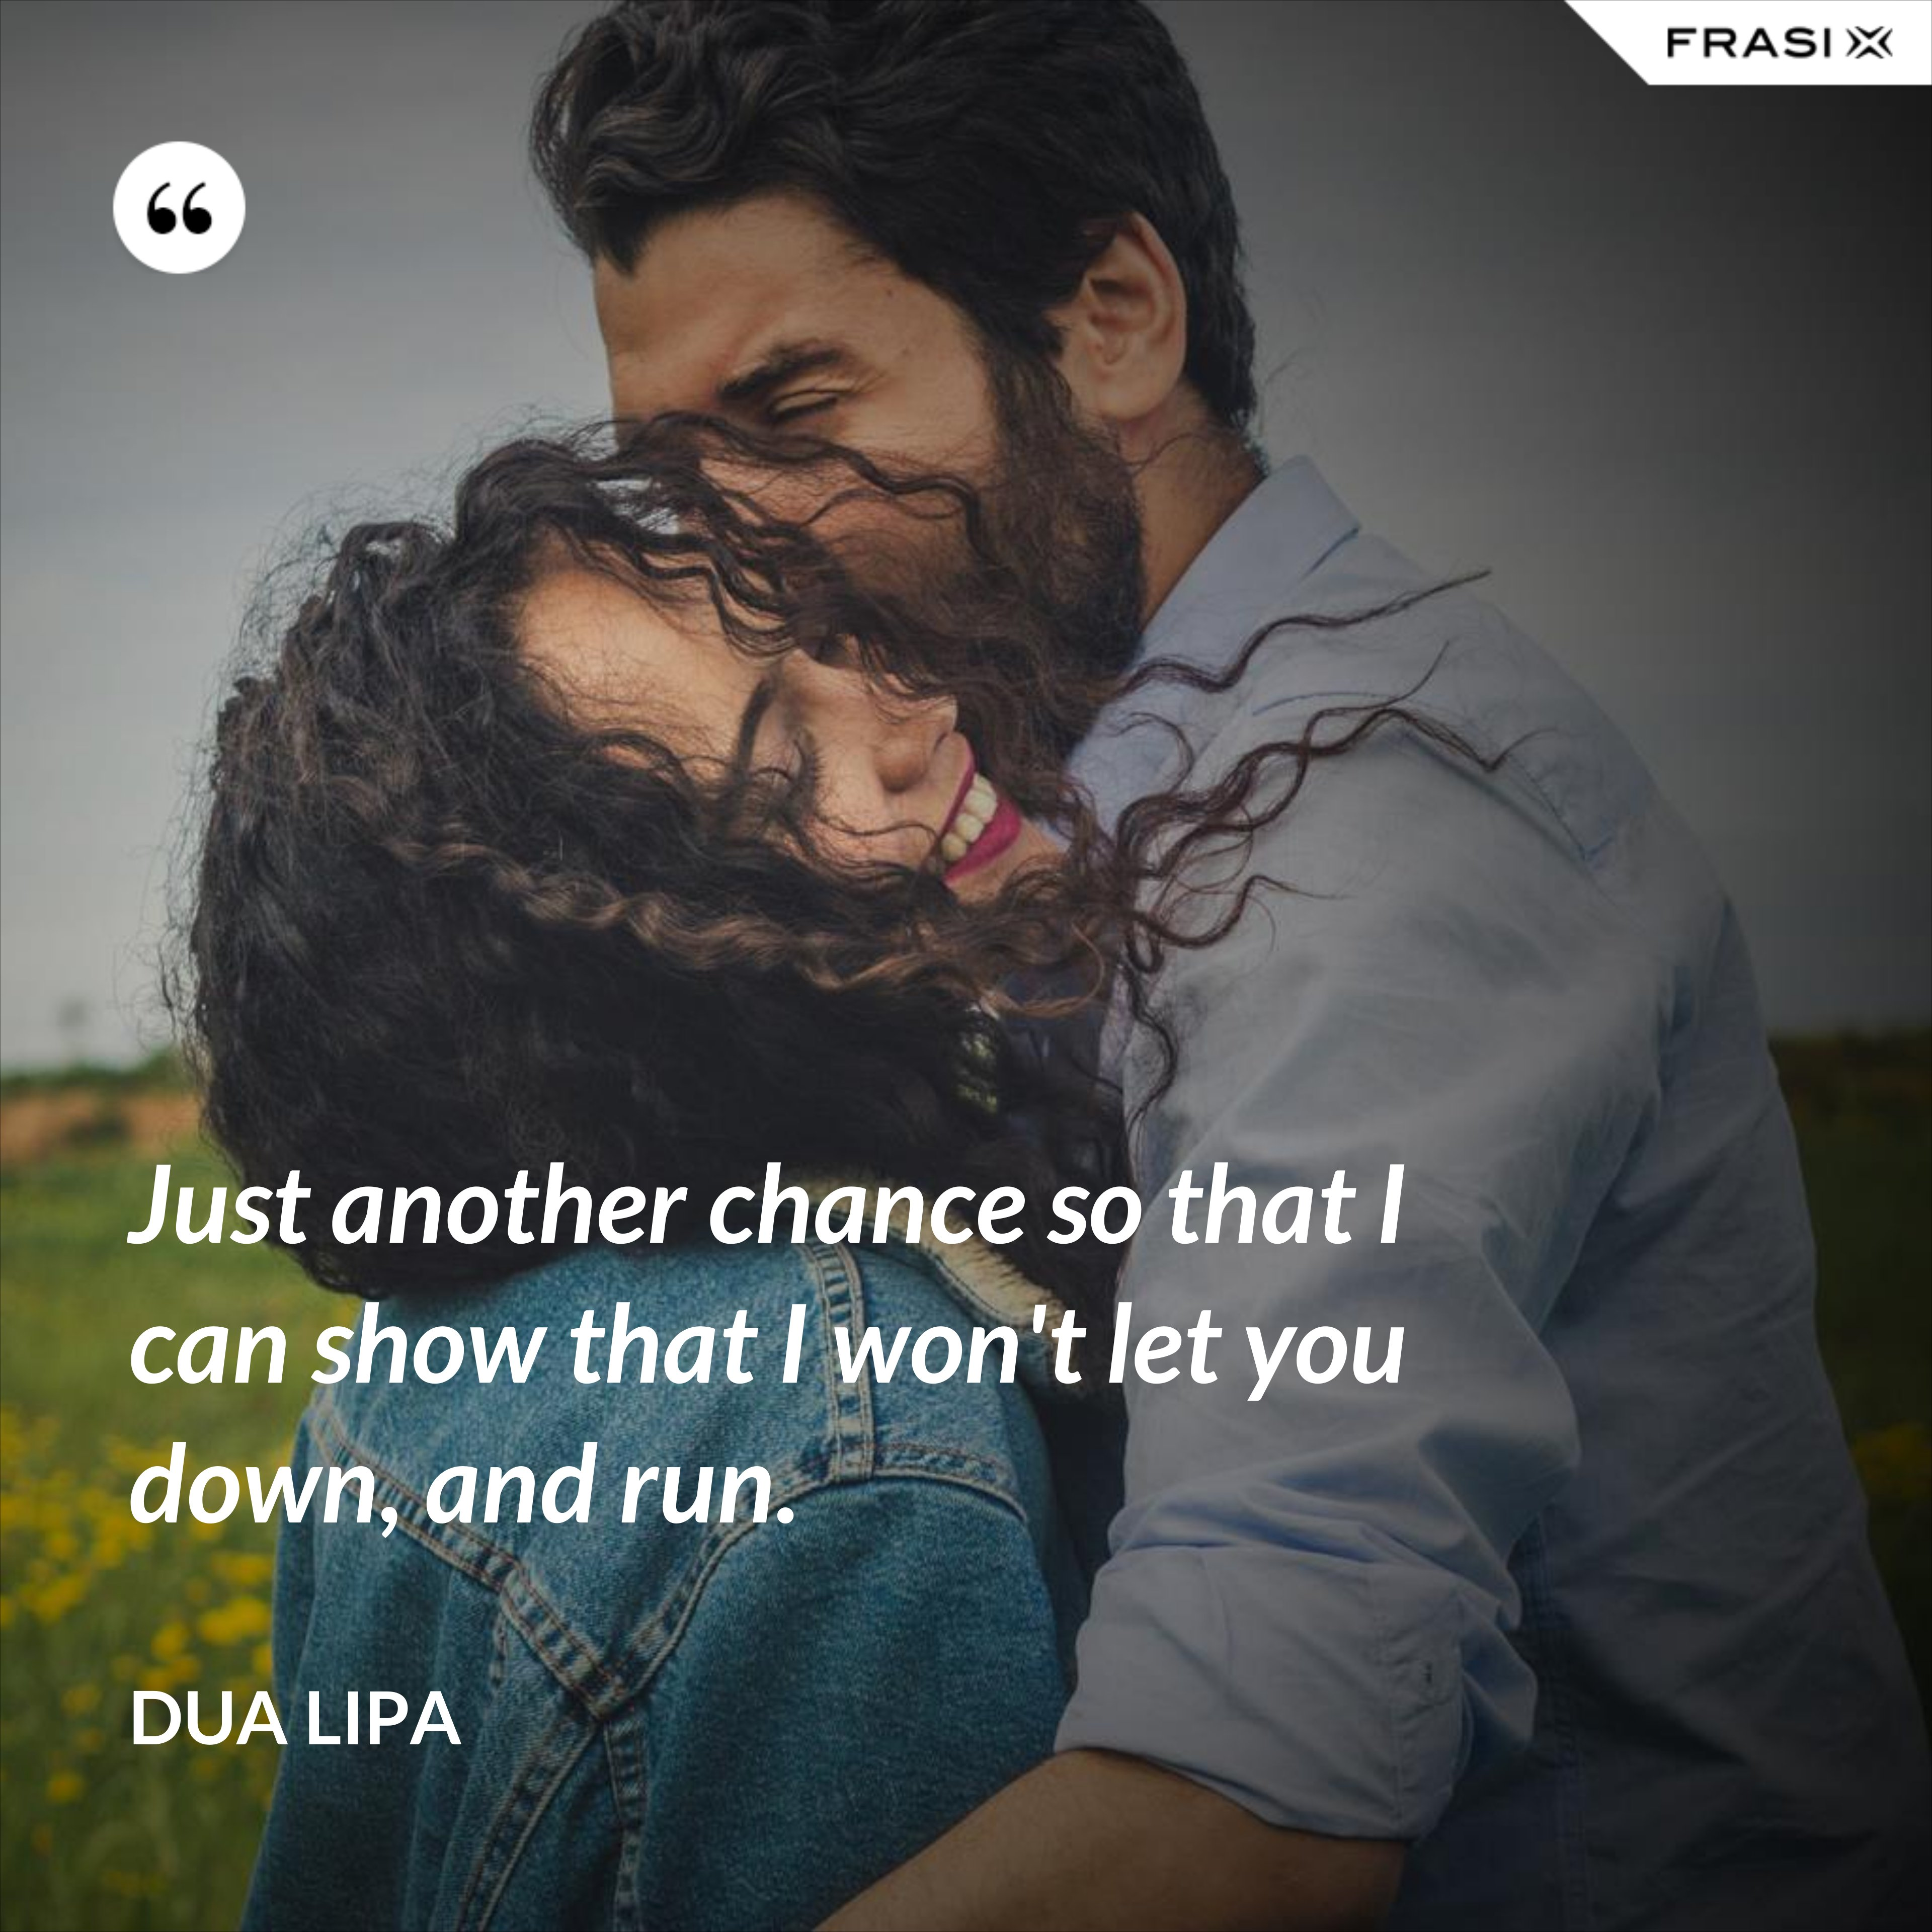 Just another chance so that I can show that I won't let you down, and run. - Dua Lipa